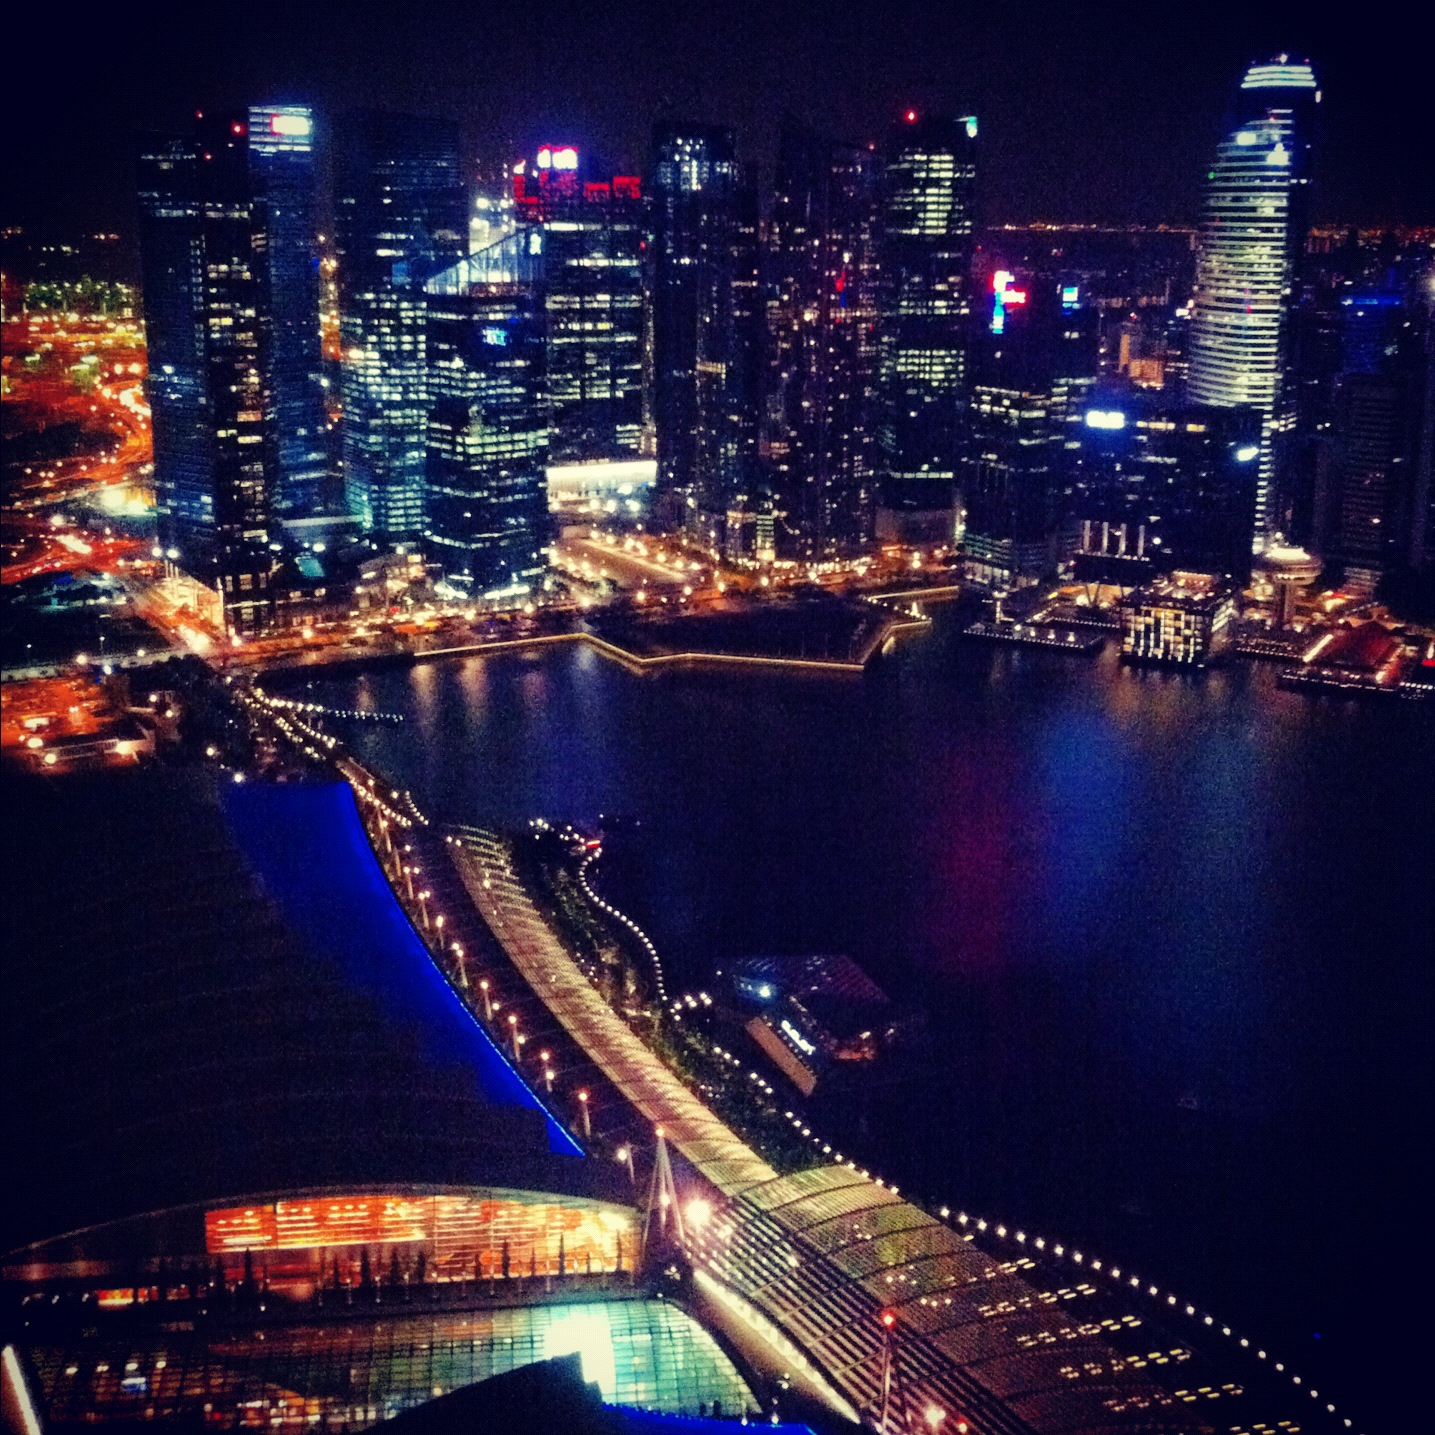 La vista dallo Skypark del Marina Bay Sands